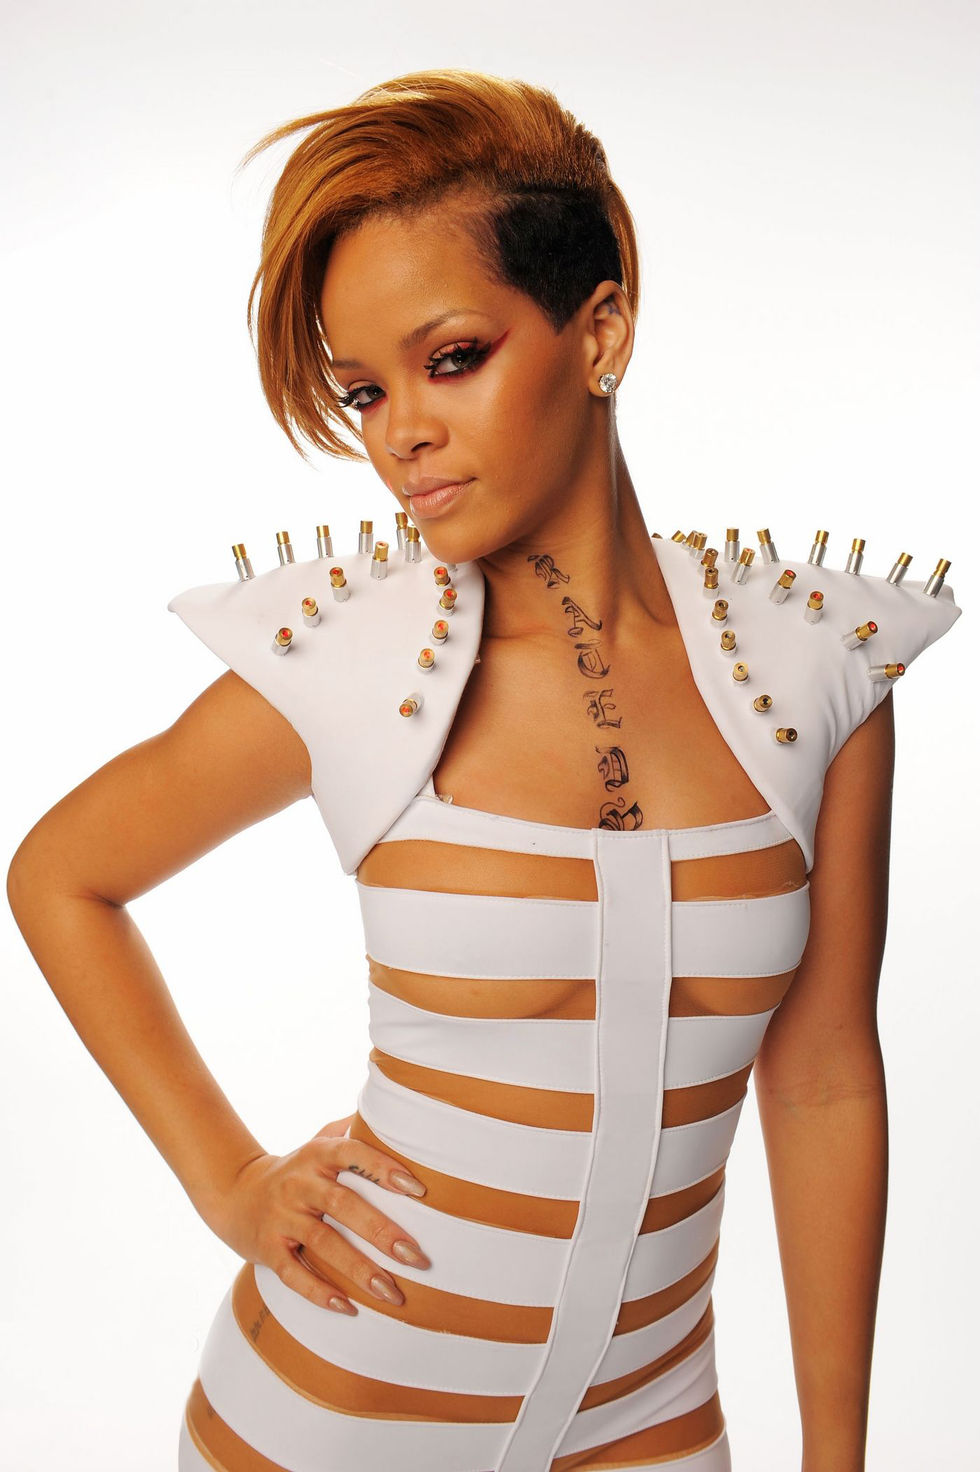 rihanna 2009 american music awards photoshoot gotceleb